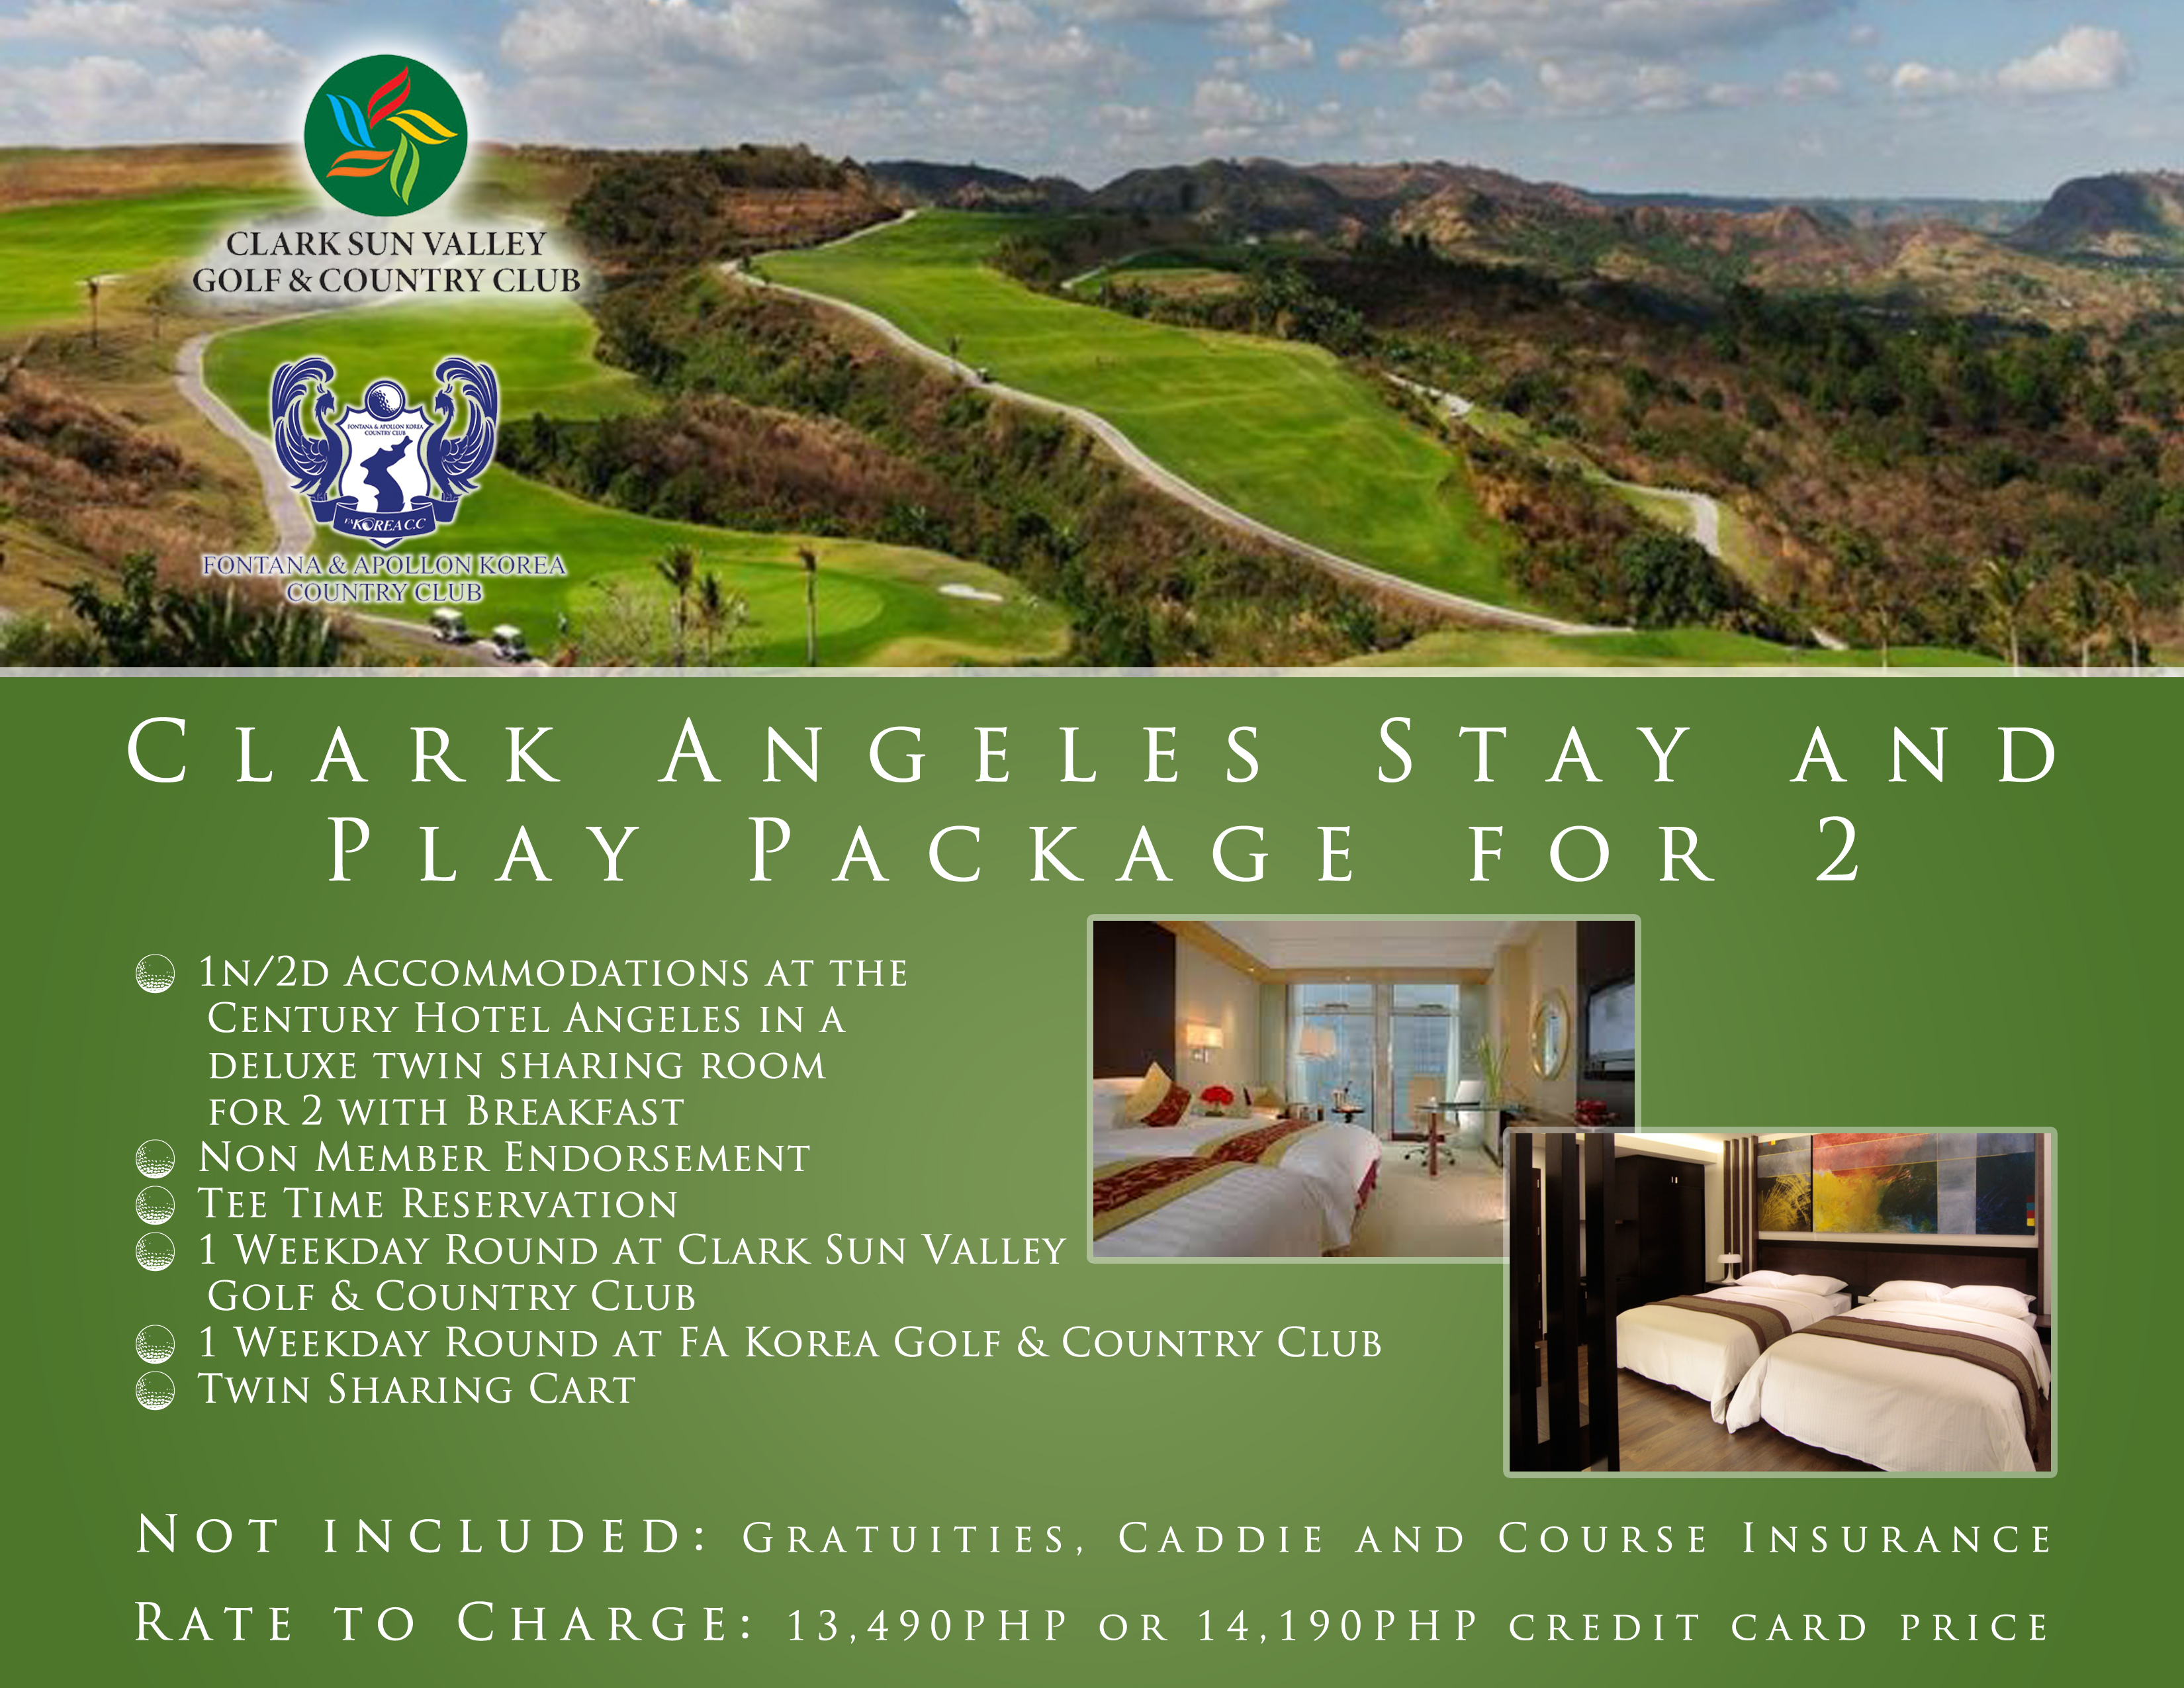 Offer #5 - Clark Angeles Stay and Play Package for 2